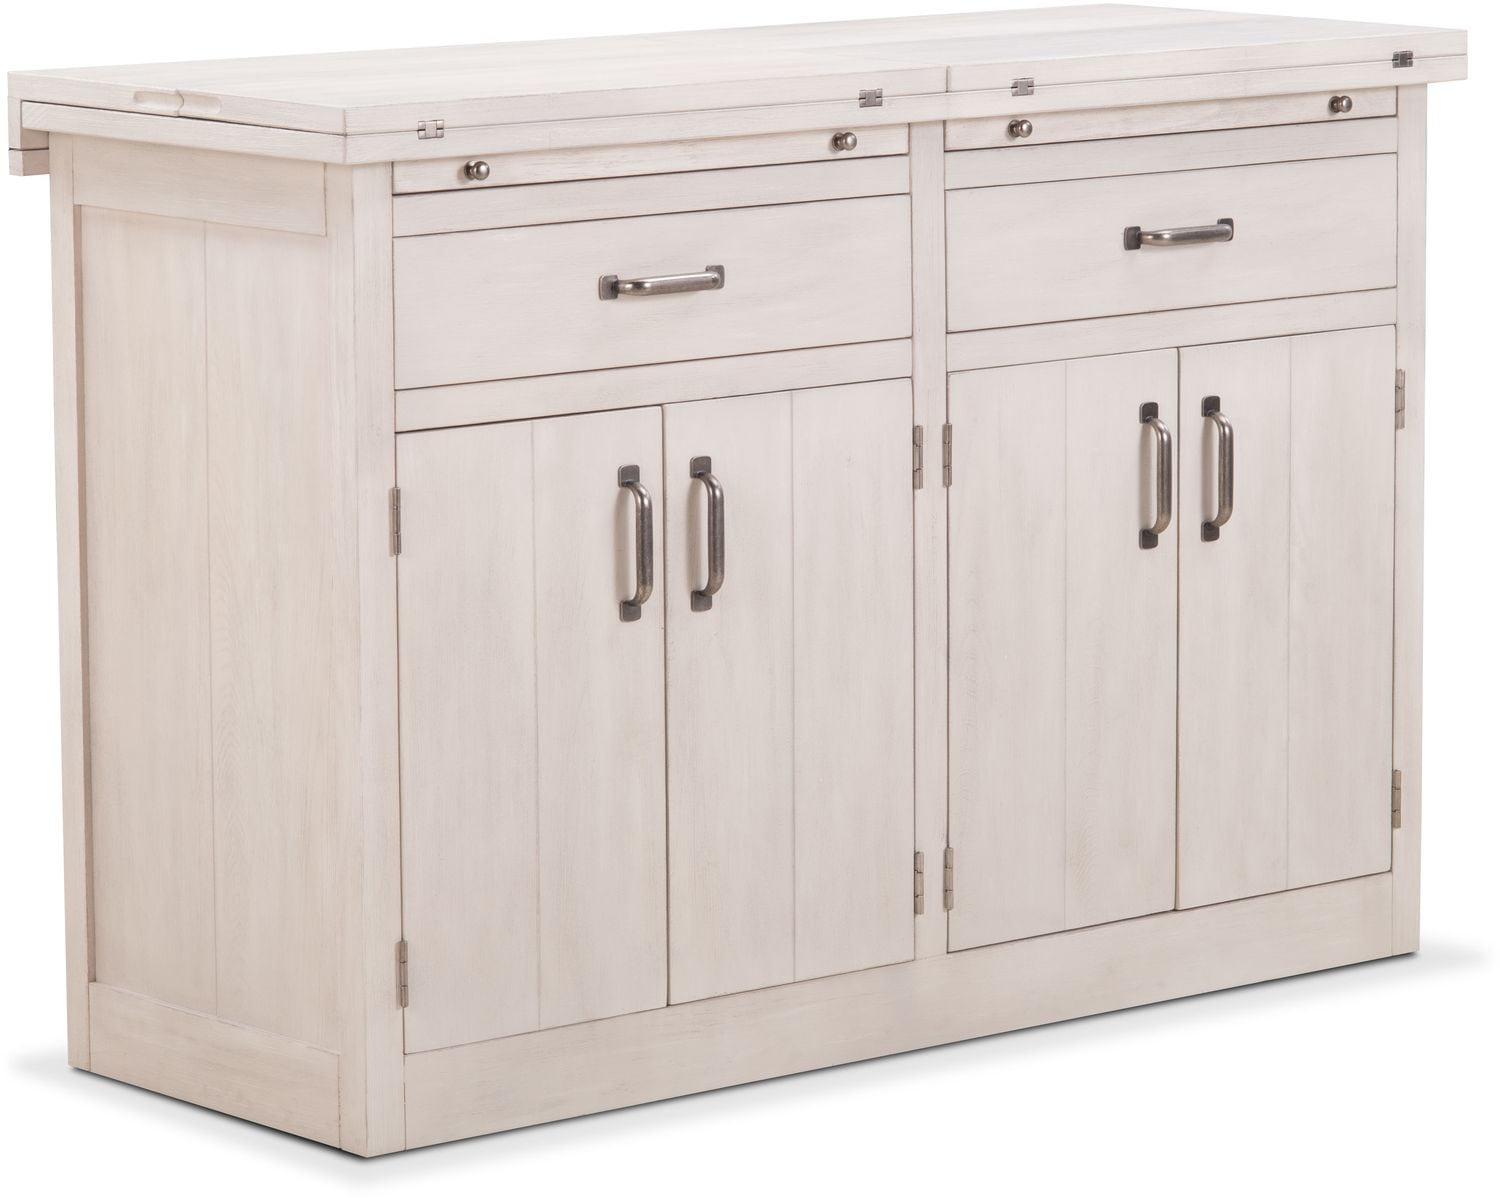 Dining Room Furniture - Lancaster Sideboard with Casters - Water White